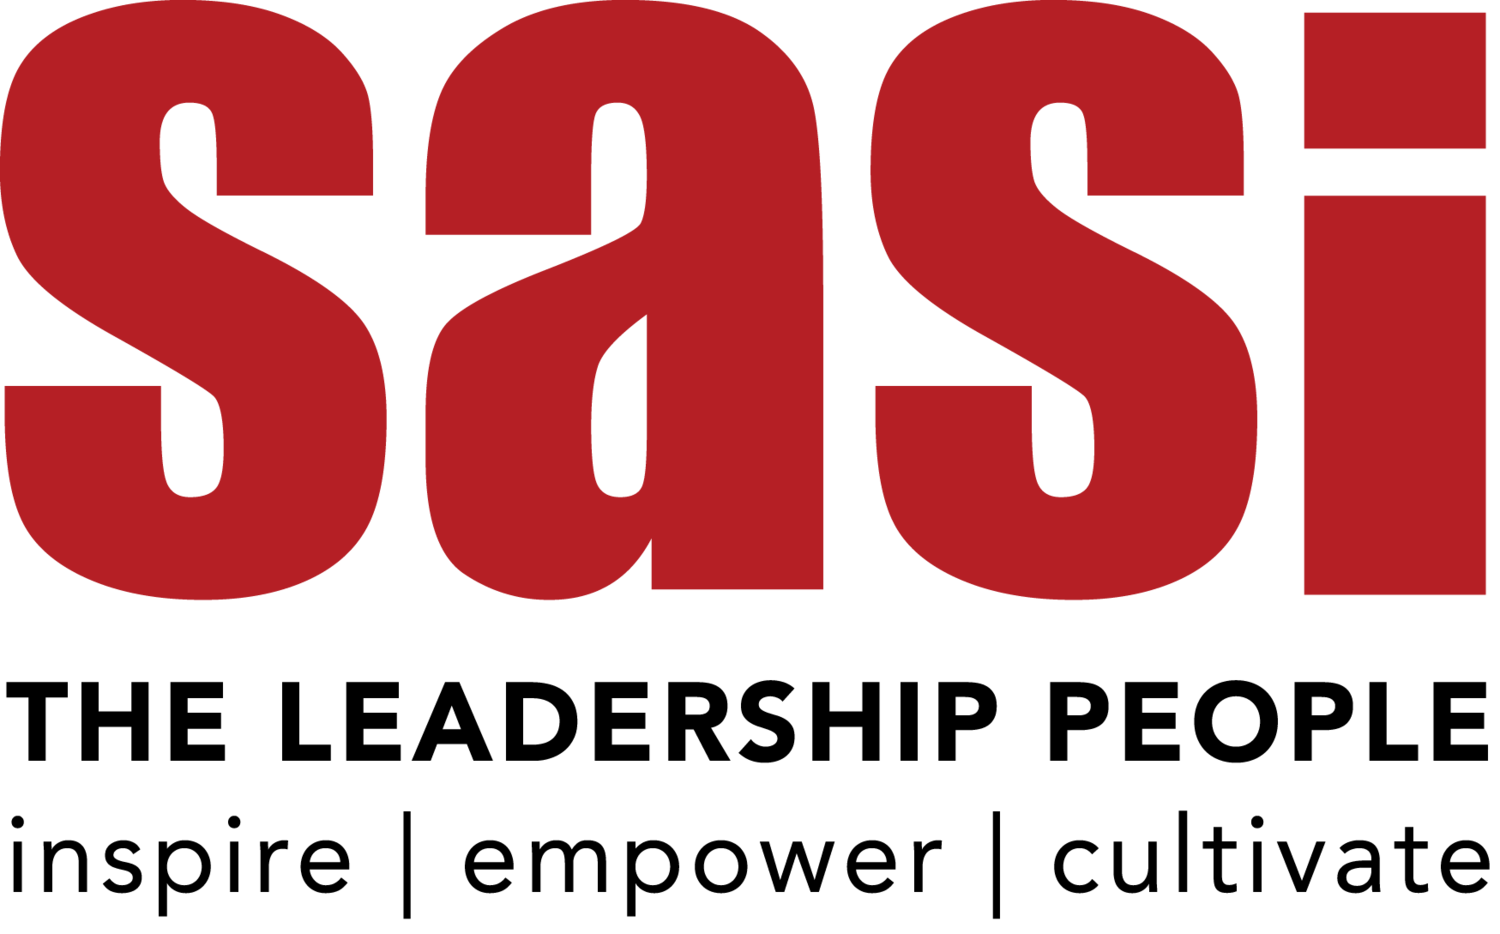 SASI- The Leadership People